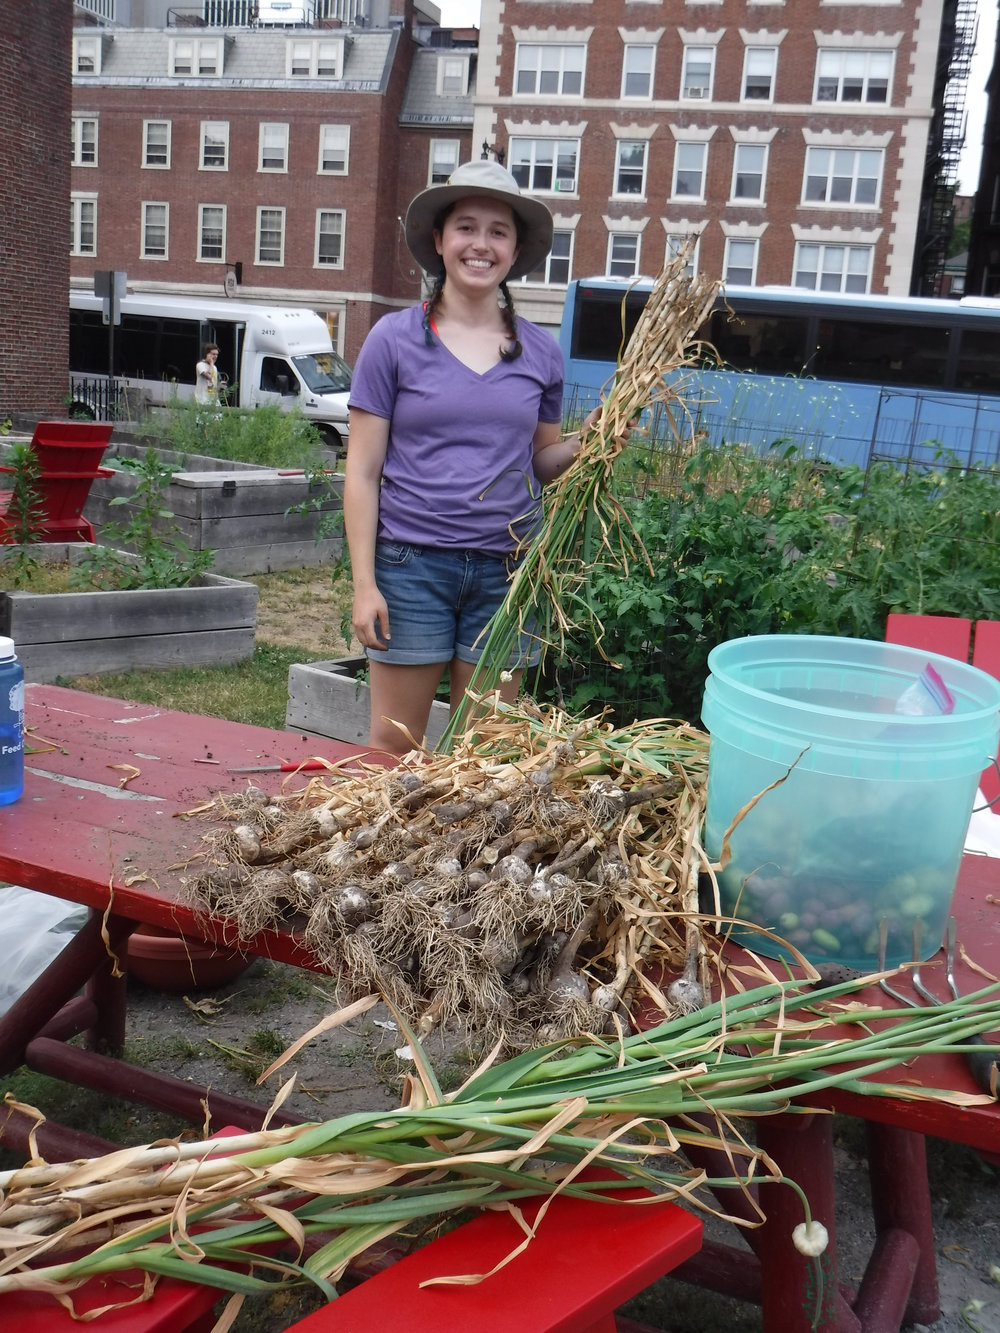 Rory at her summer urban farming internship at Harvard University in Cambridge, Massachusetts, harvesting garlic.